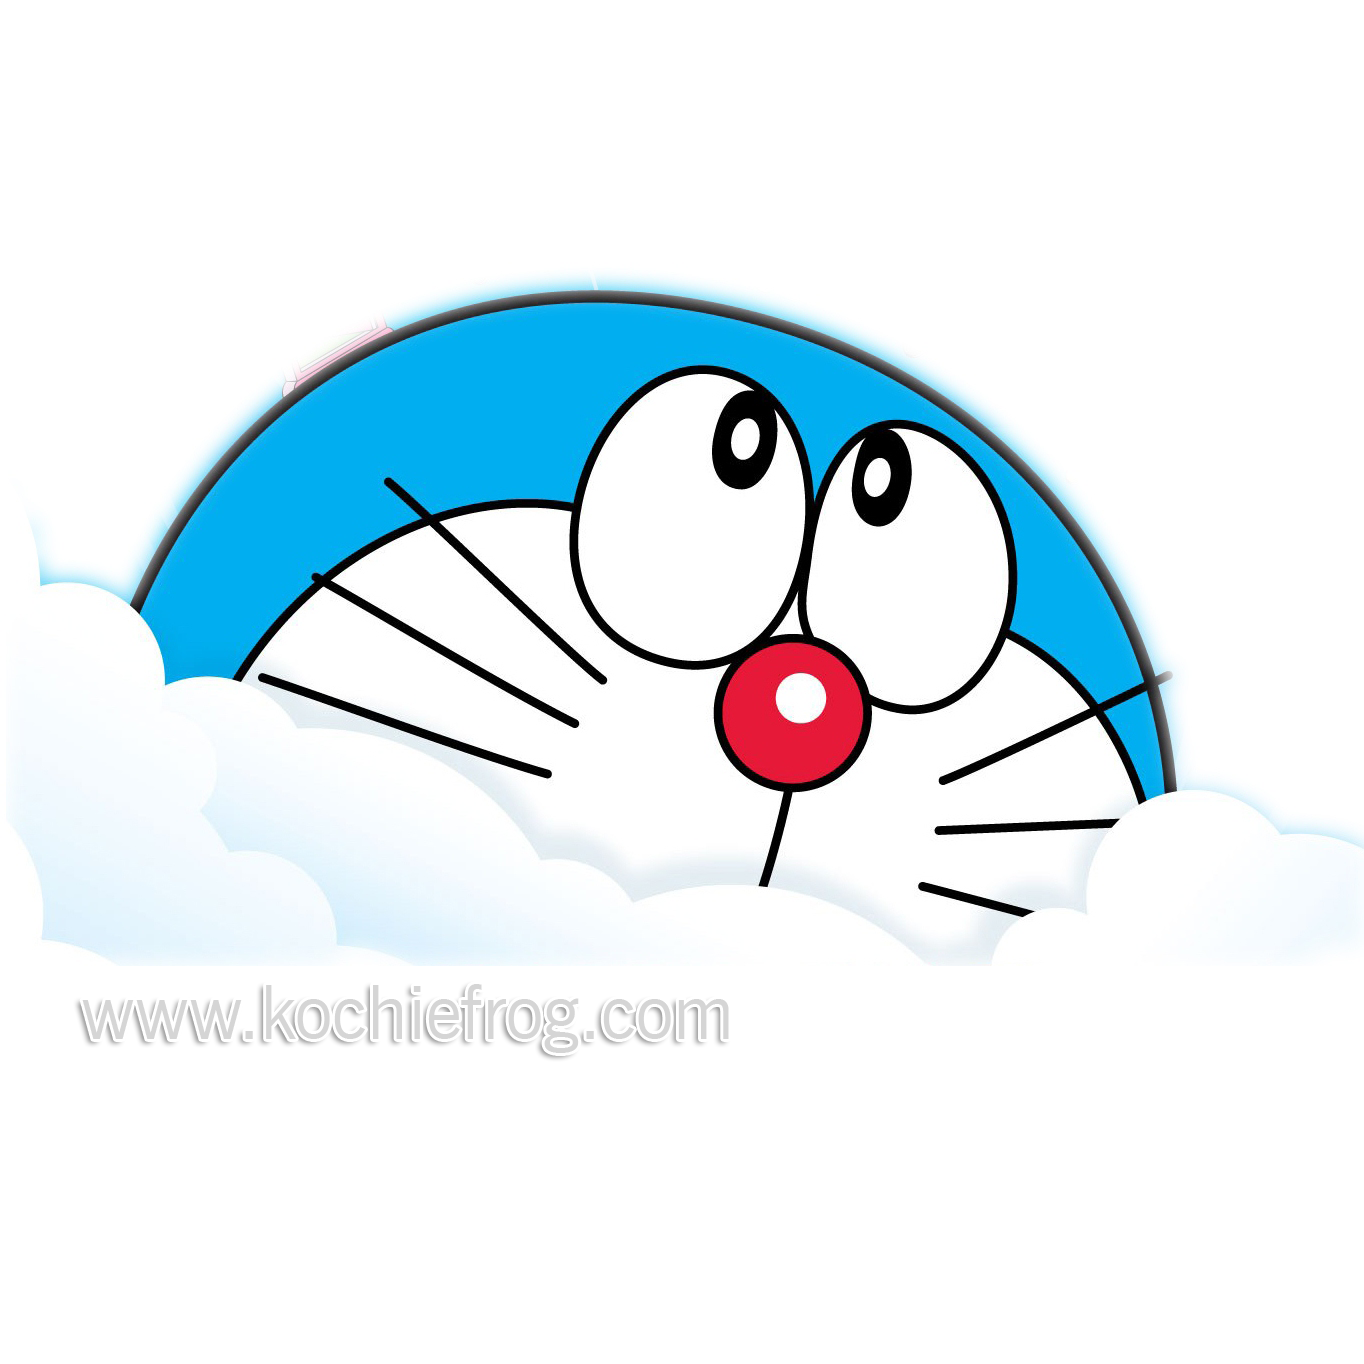 Stand By Me Doraemon Download DP BBM GIF - Kochie Frog